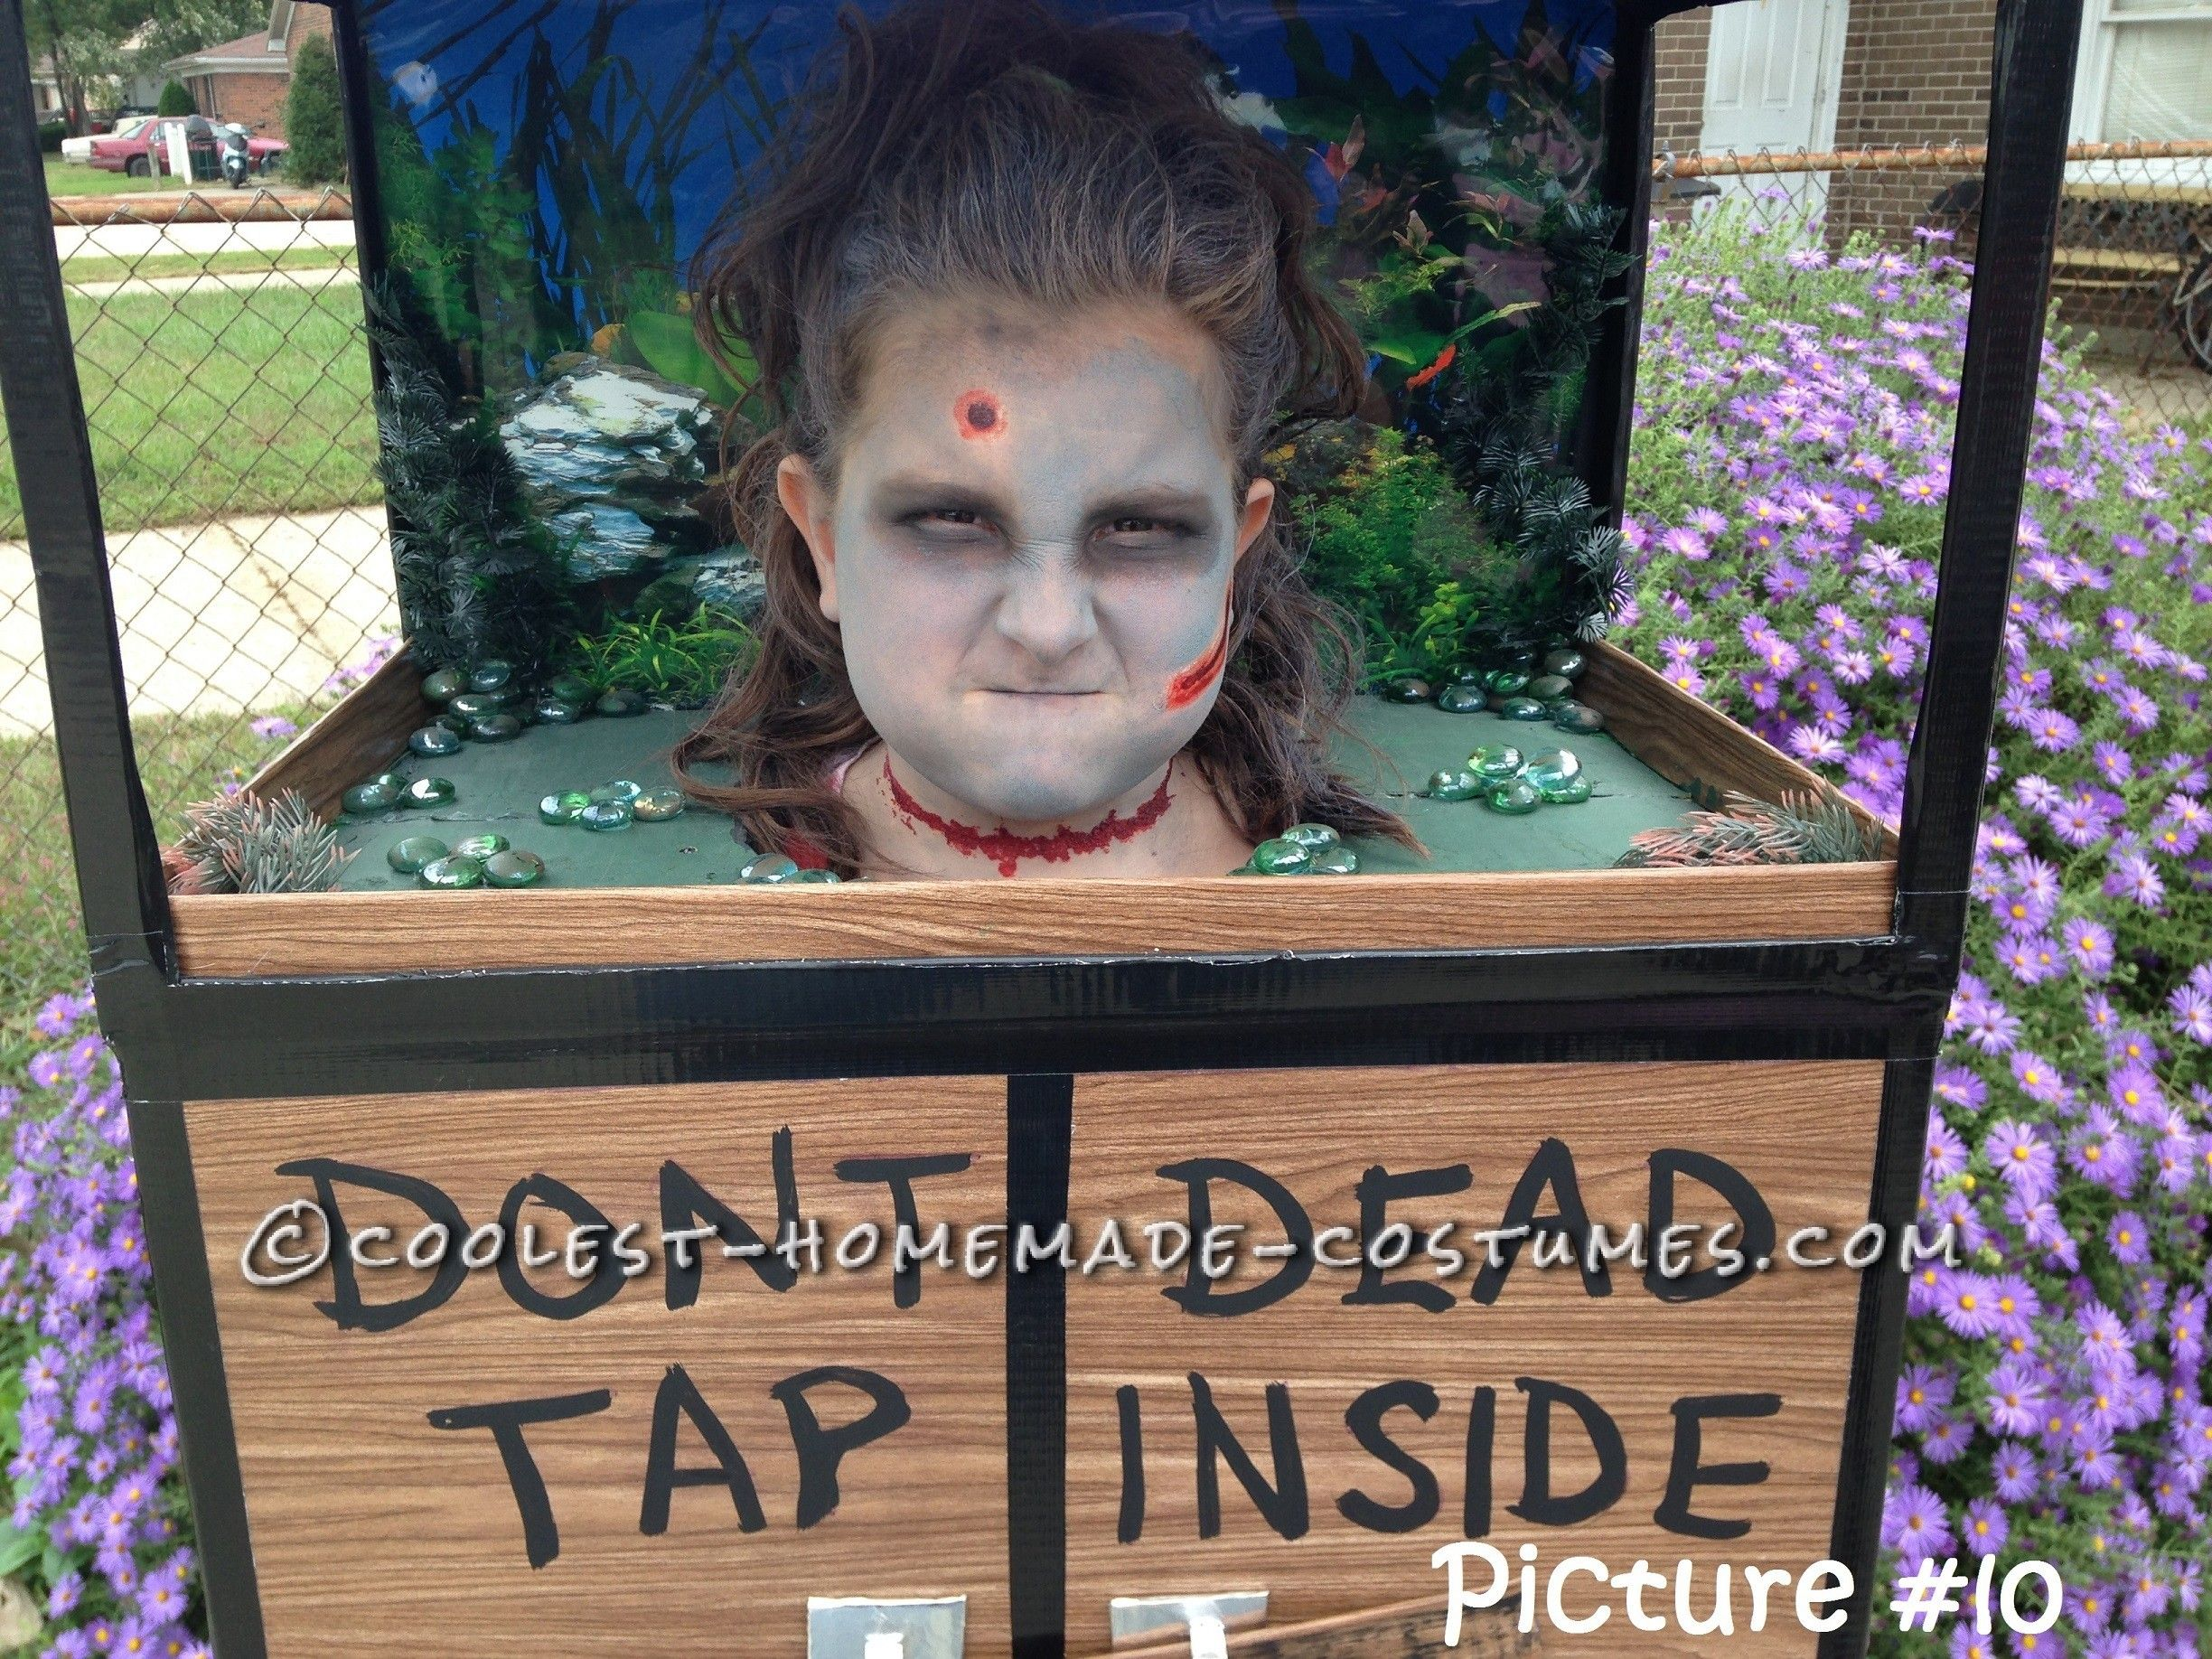 Fish tank decorations zombie - Original Zombie Head In A Fish Tank Costume